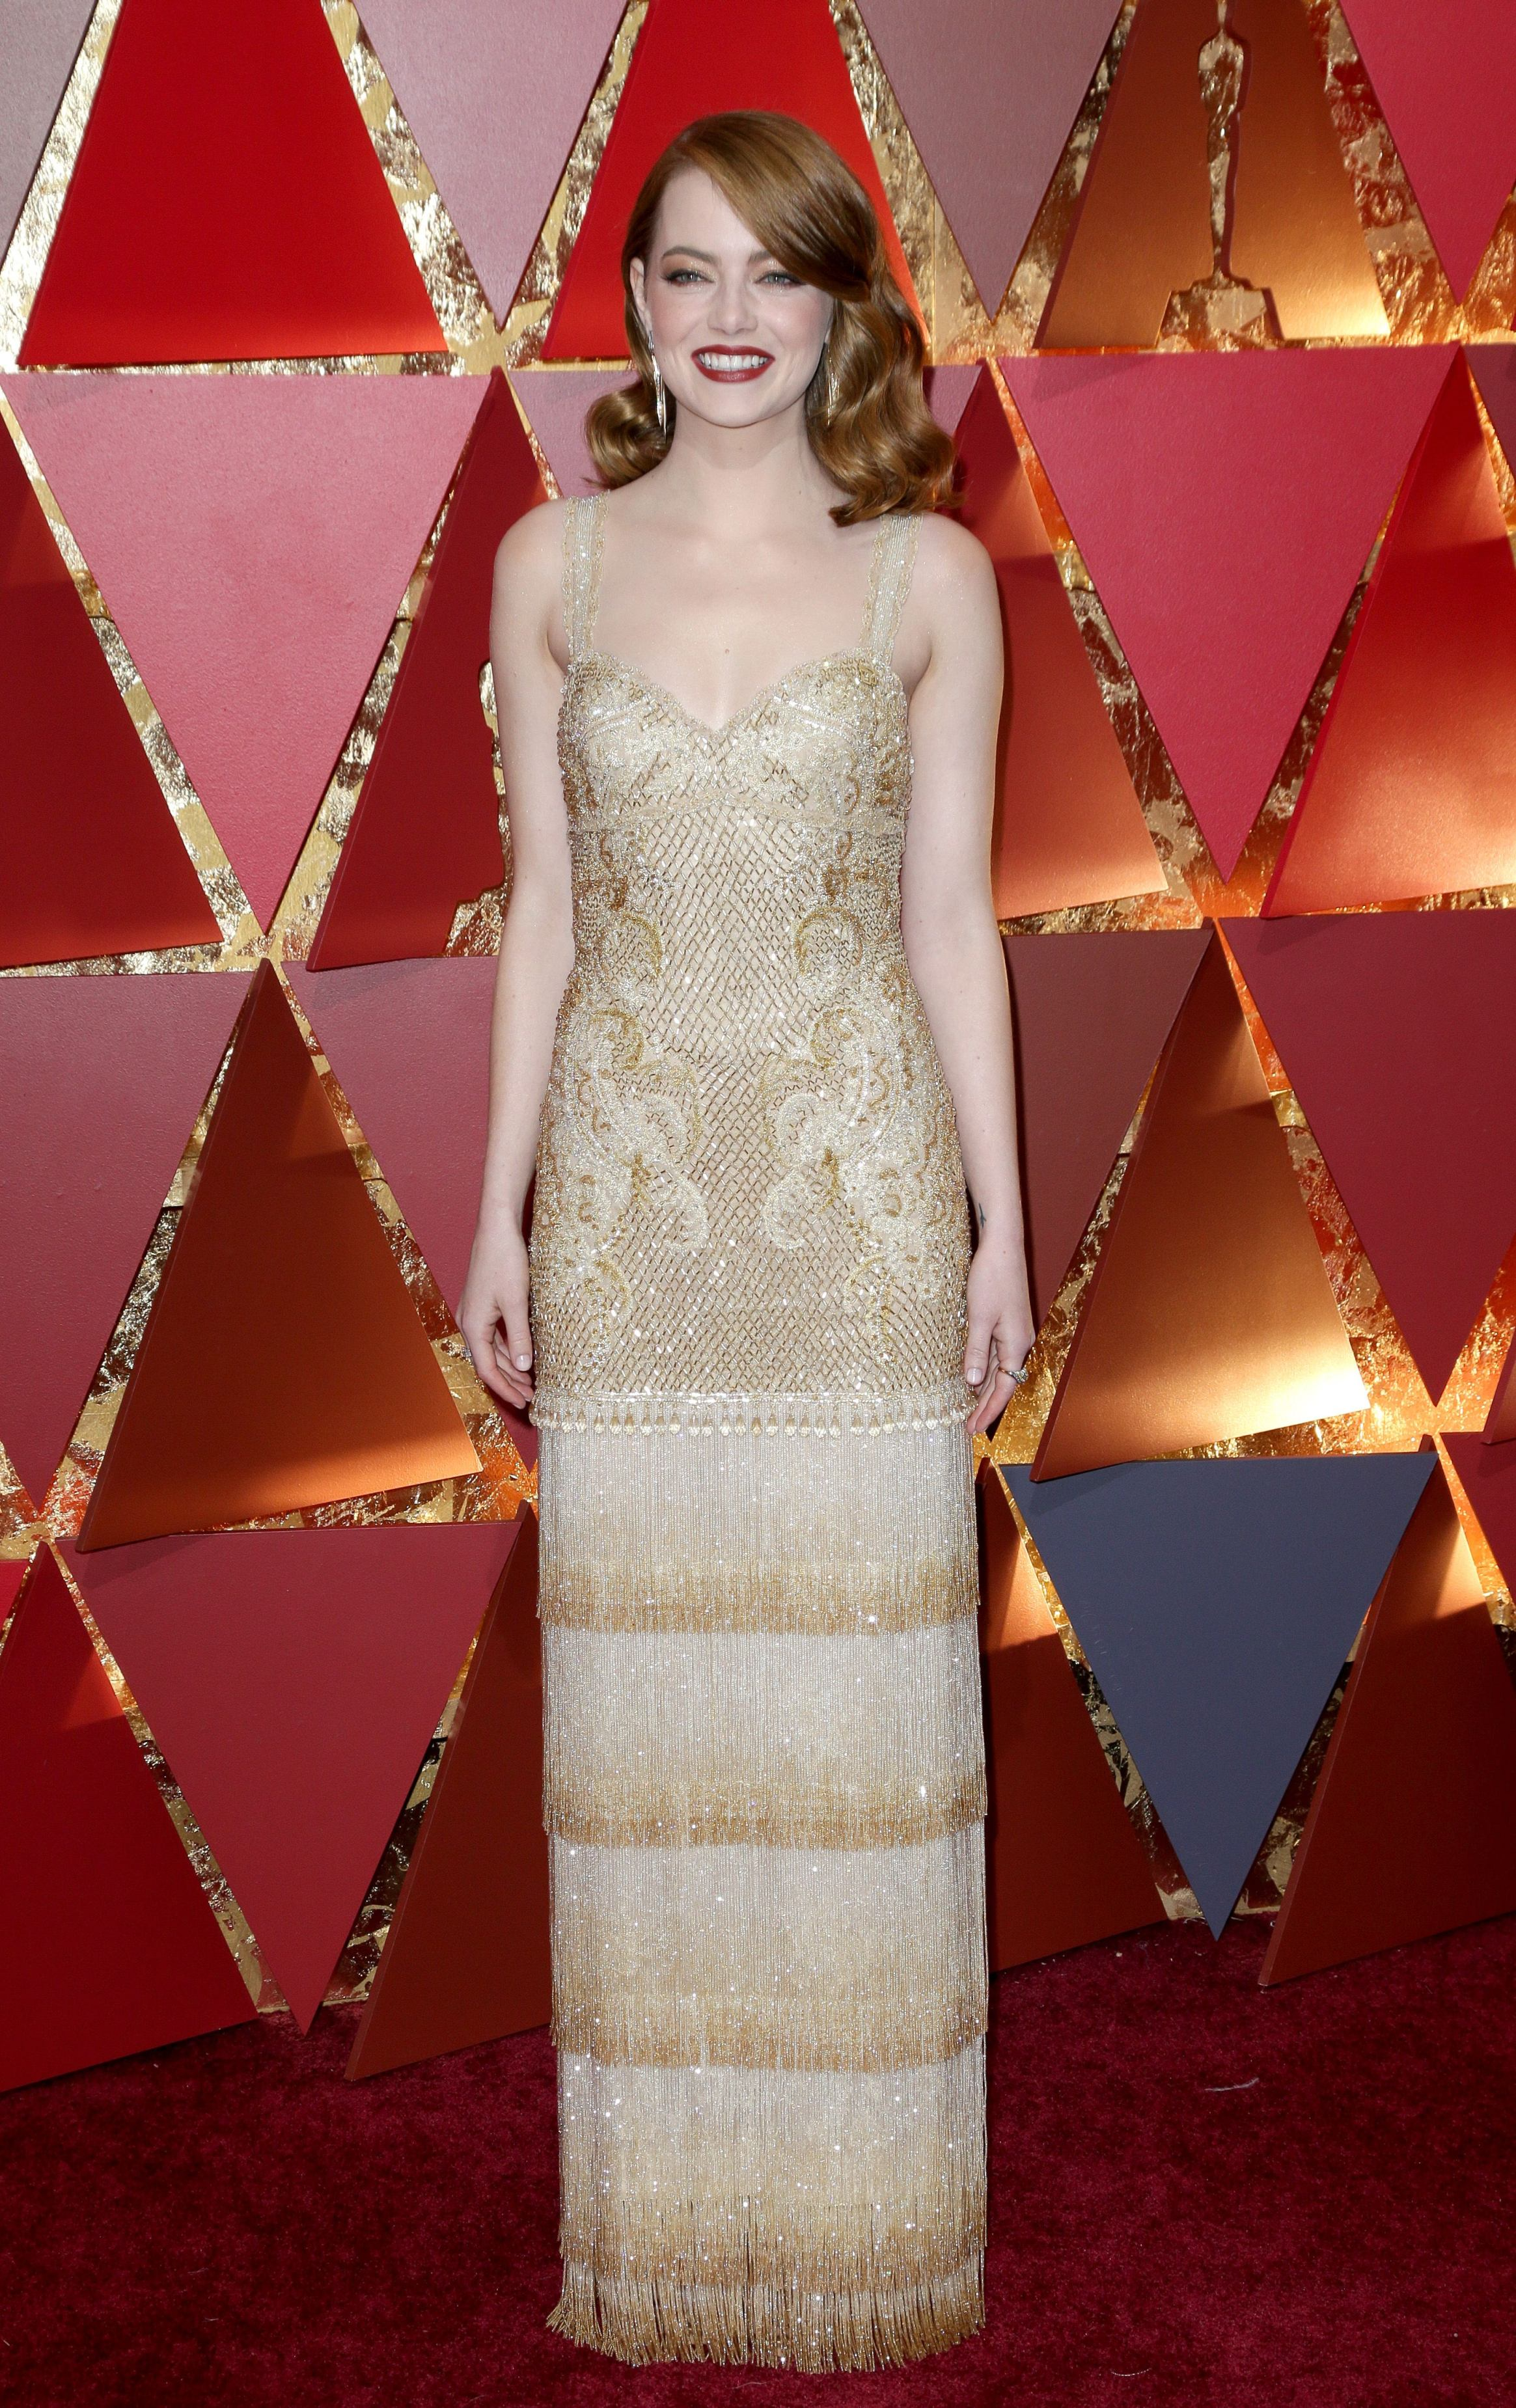 Mandatory Credit: Photo by Jim Smeal/BEI/Shutterstock (8434881sx) Emma Stone 89th Annual Academy Awards, Arrivals, Los Angeles, USA - 26 Feb 2017